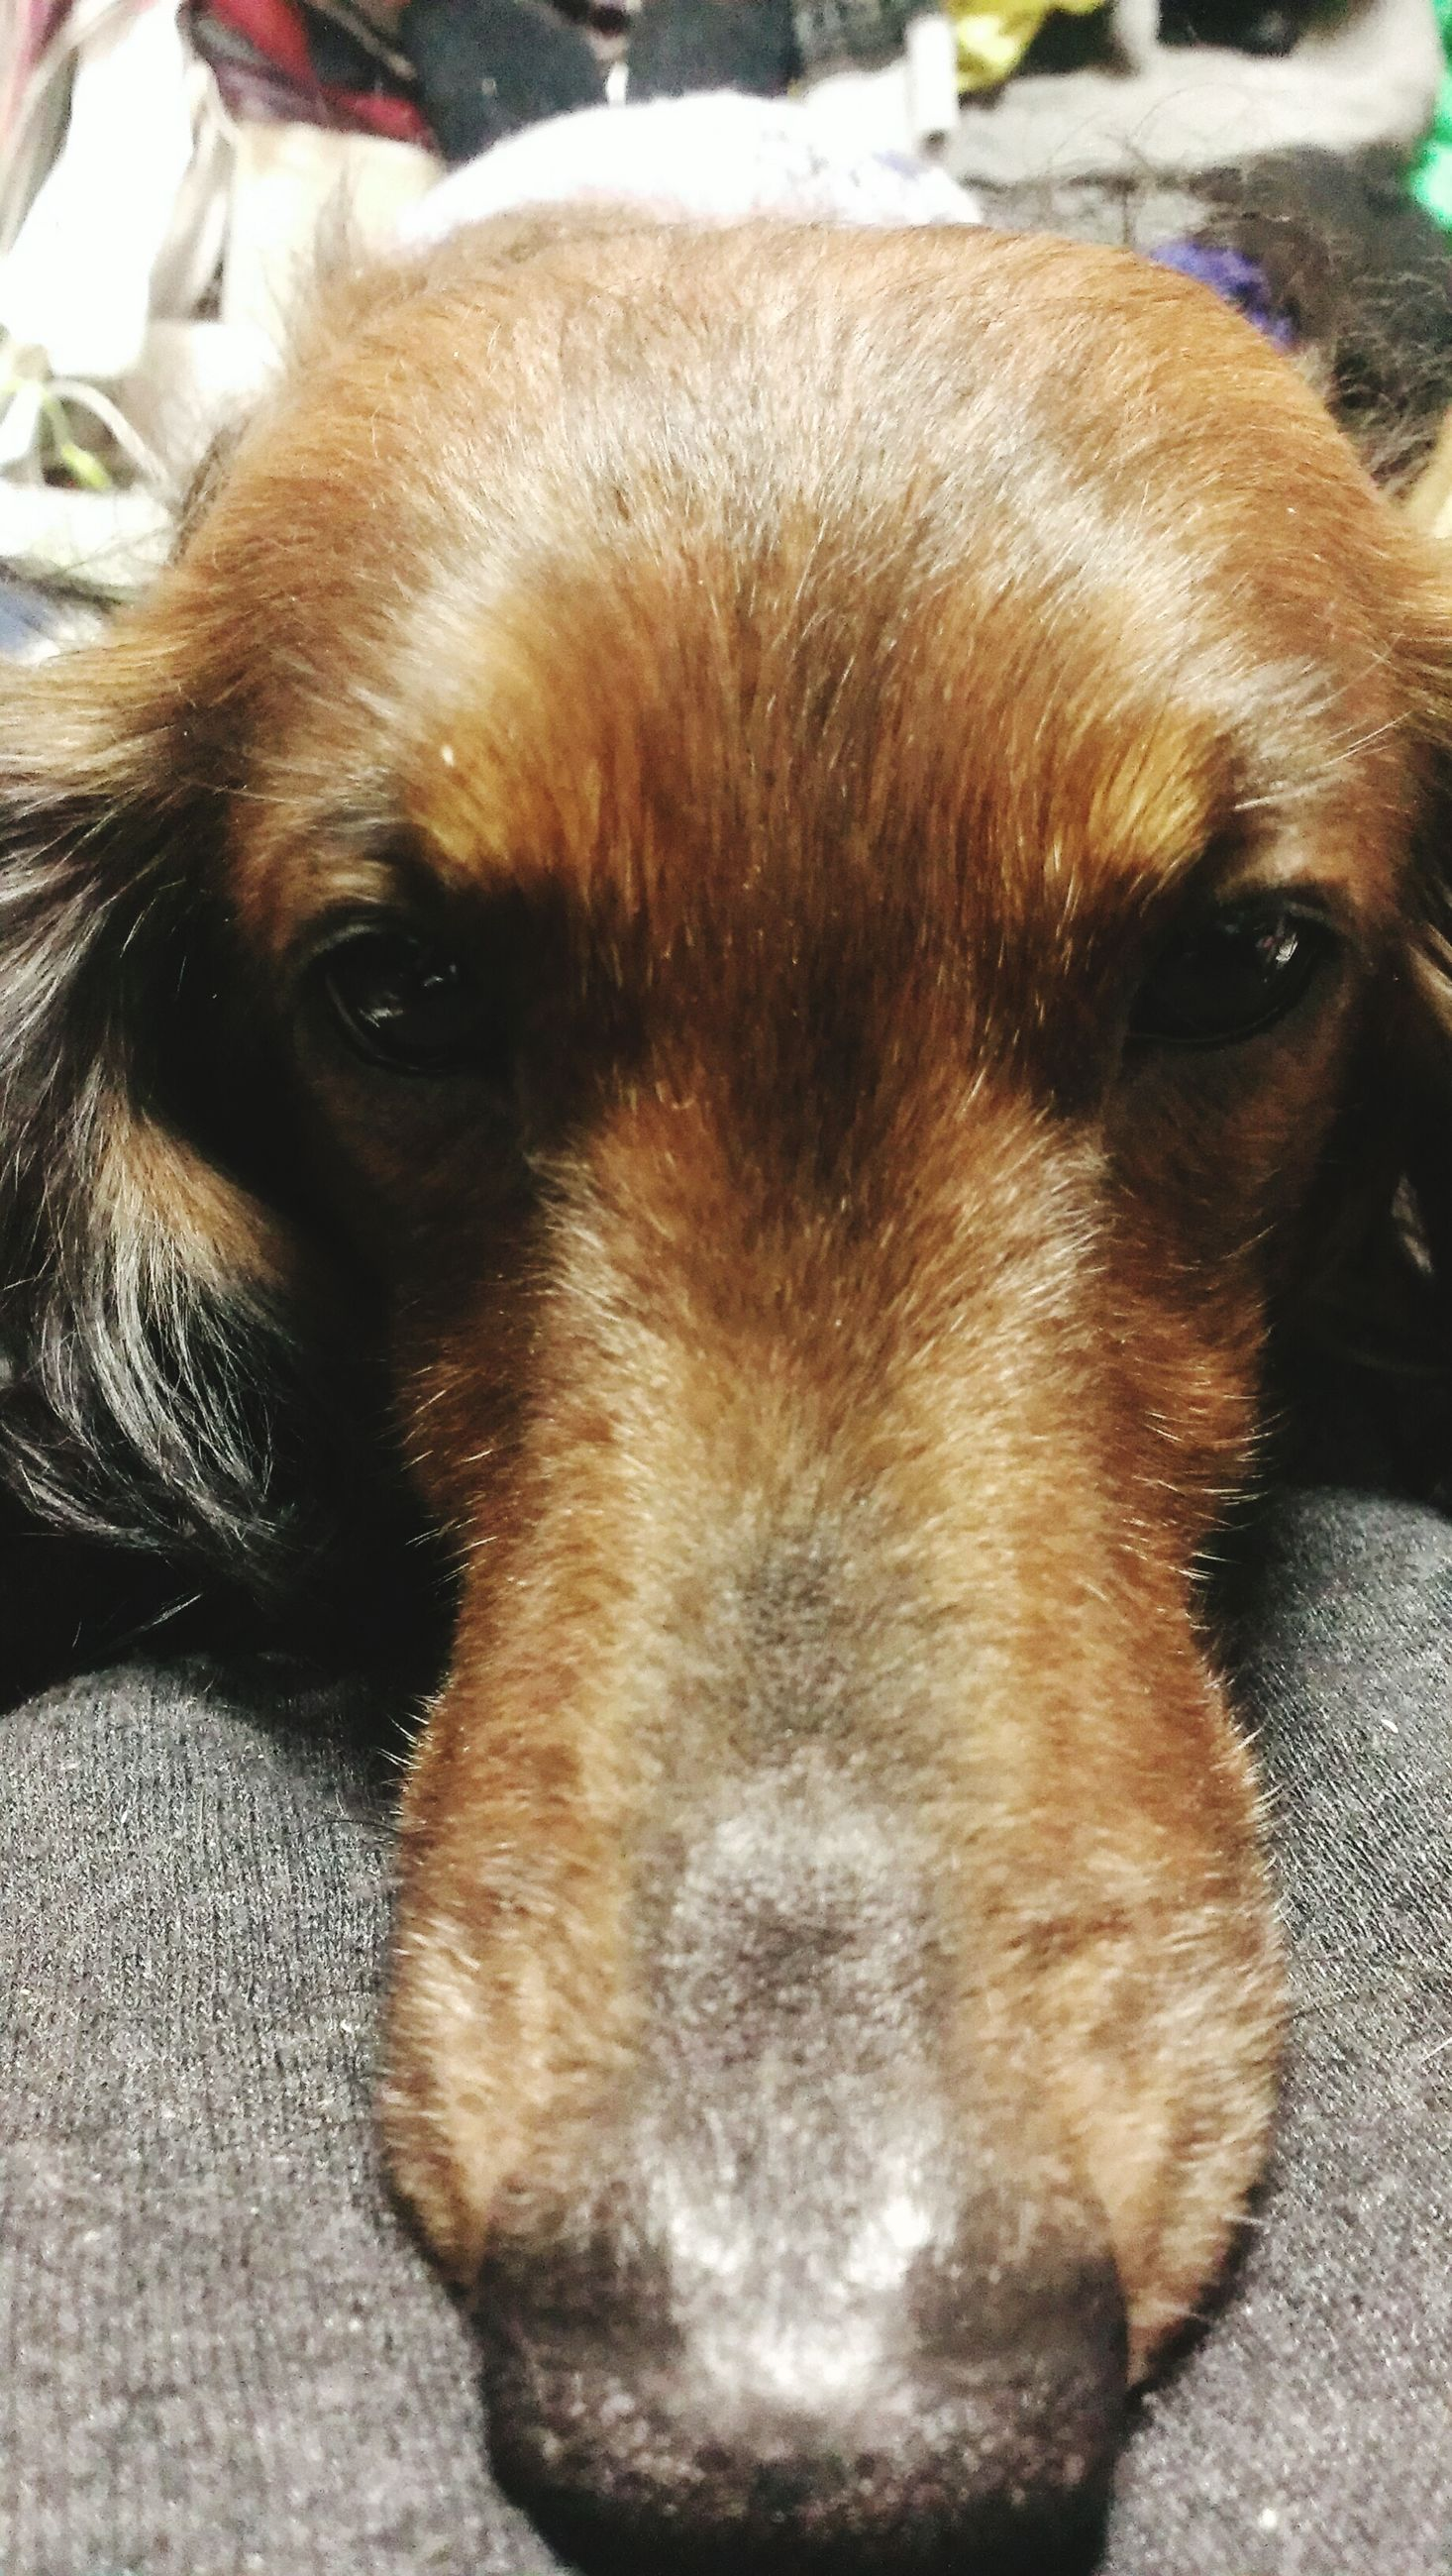 animal themes, dog, domestic animals, pets, mammal, one animal, animal head, close-up, brown, relaxation, animal body part, indoors, portrait, loyalty, puppy, looking at camera, no people, focus on foreground, resting, canine